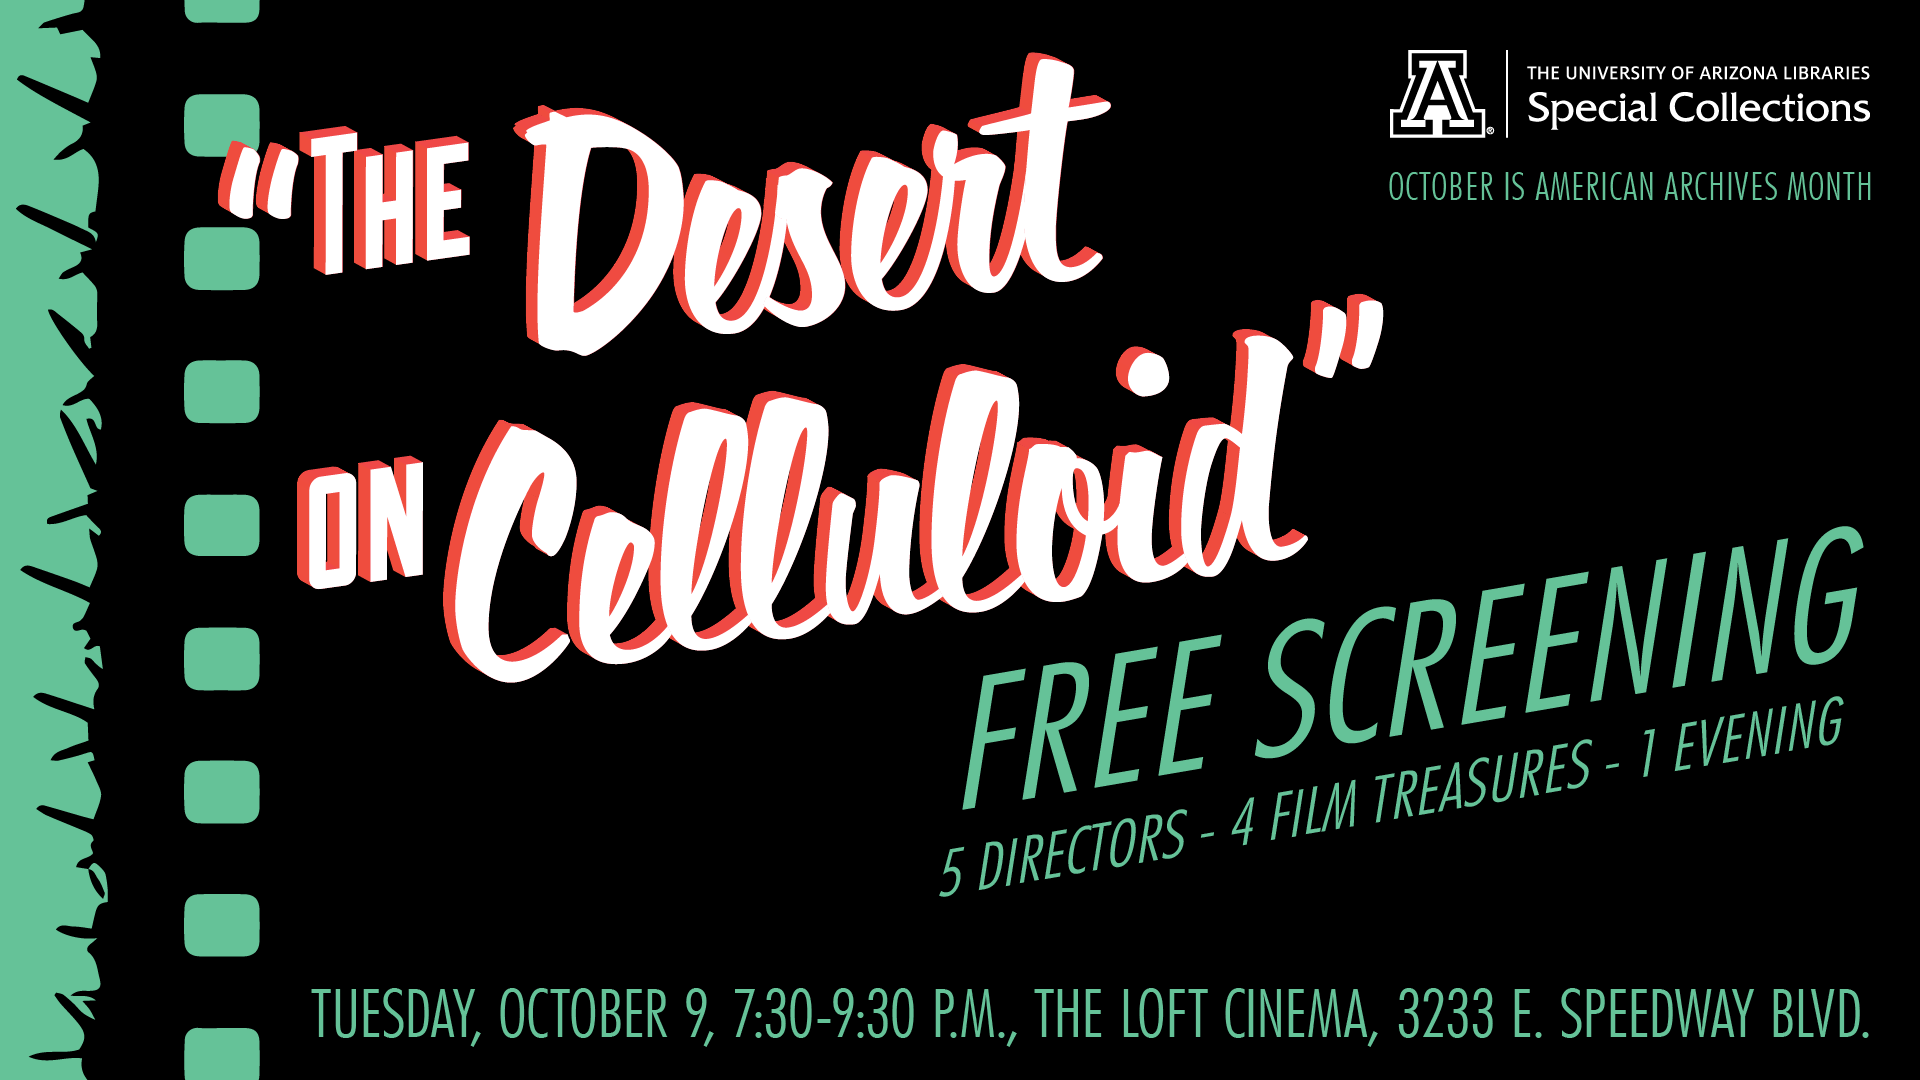 The Desert on Celluloid: 5 Directors, 4 Film Treasures, 1 Night